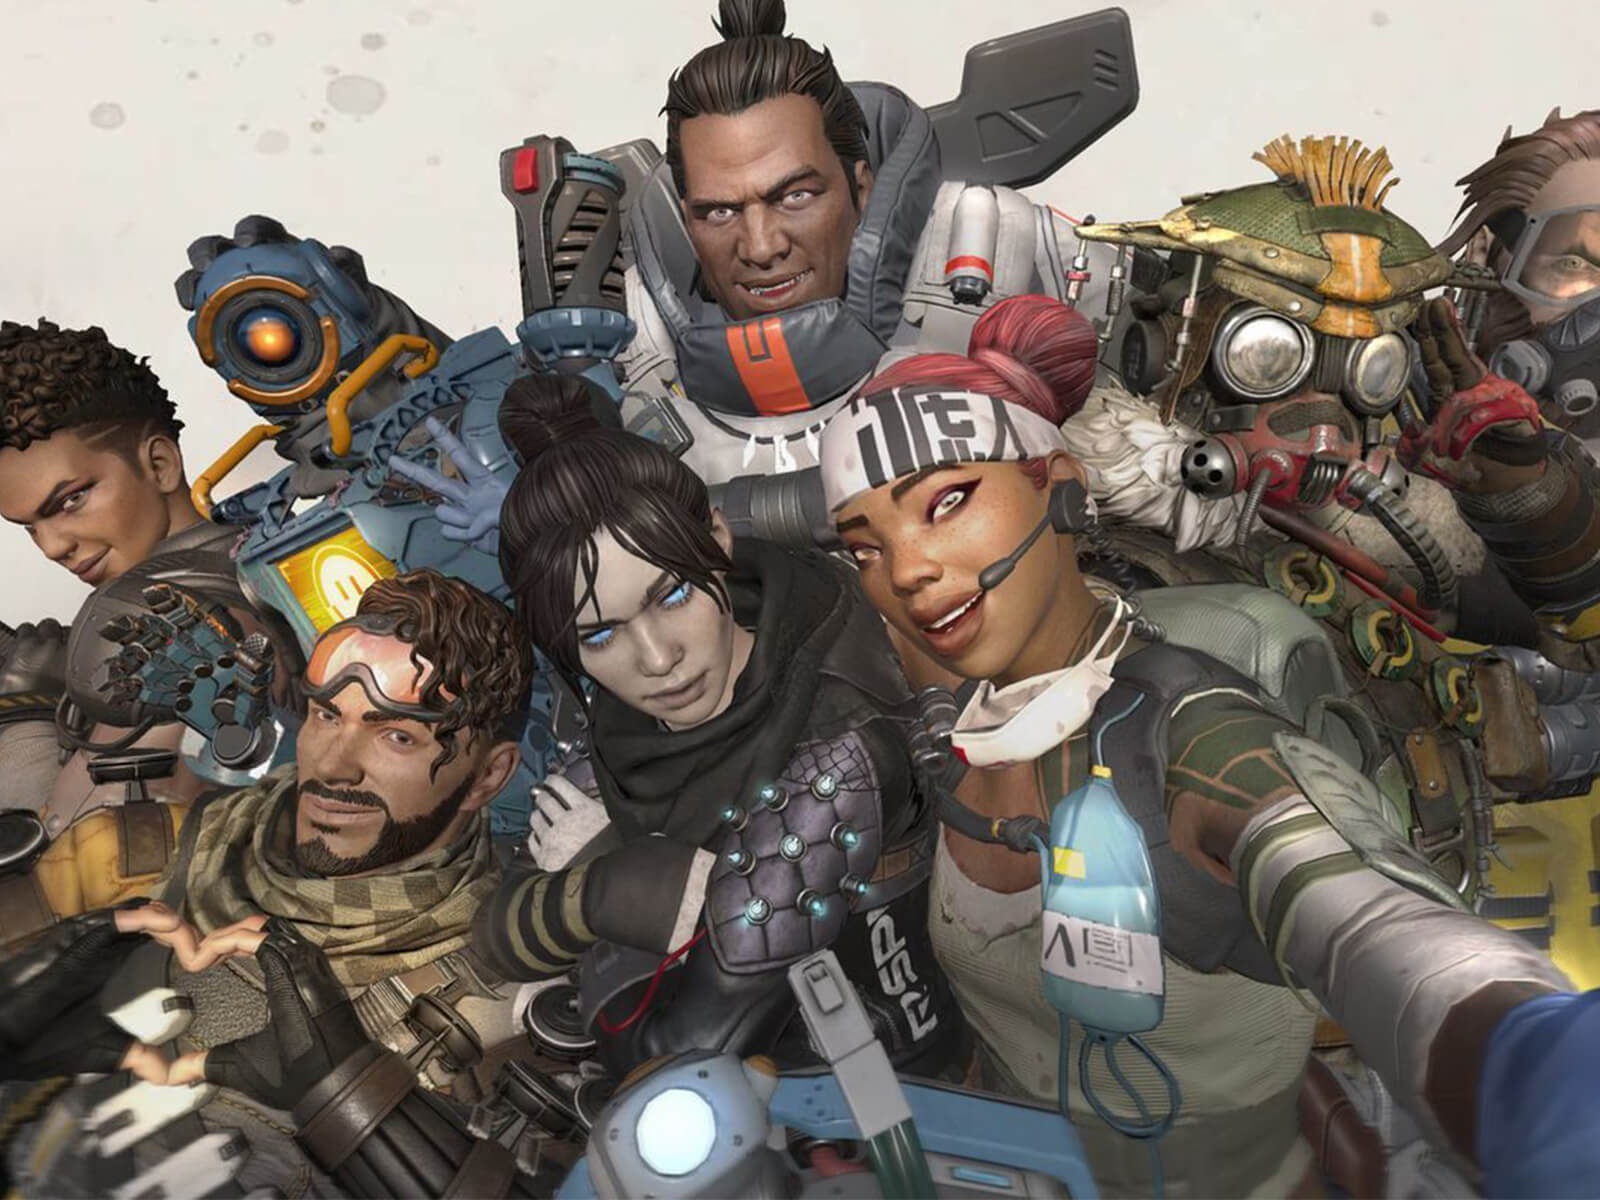 The characters from Apex Legends pose for a selfie.